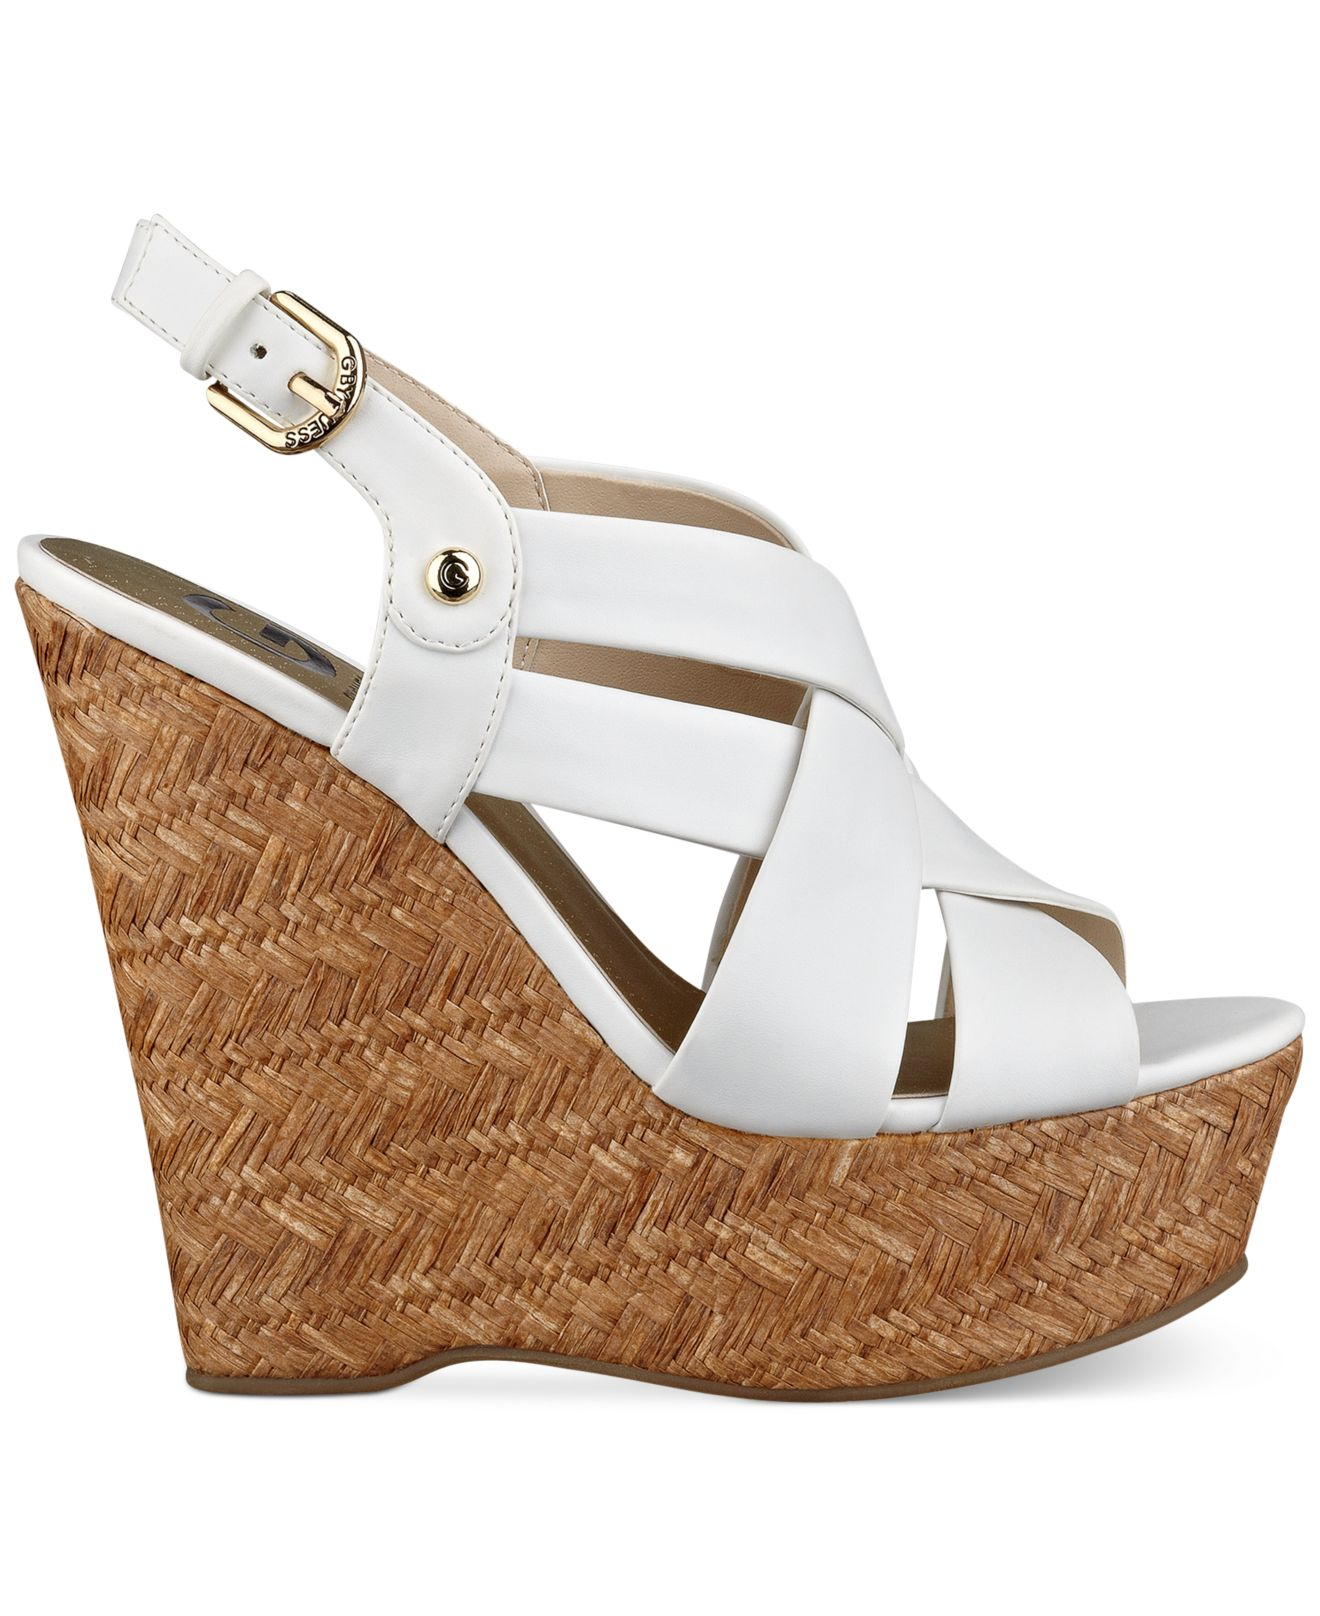 Havana Wedge Platform Sandals White Lyst Women's Guess G Whye2ed9i By In O8kn0wPX